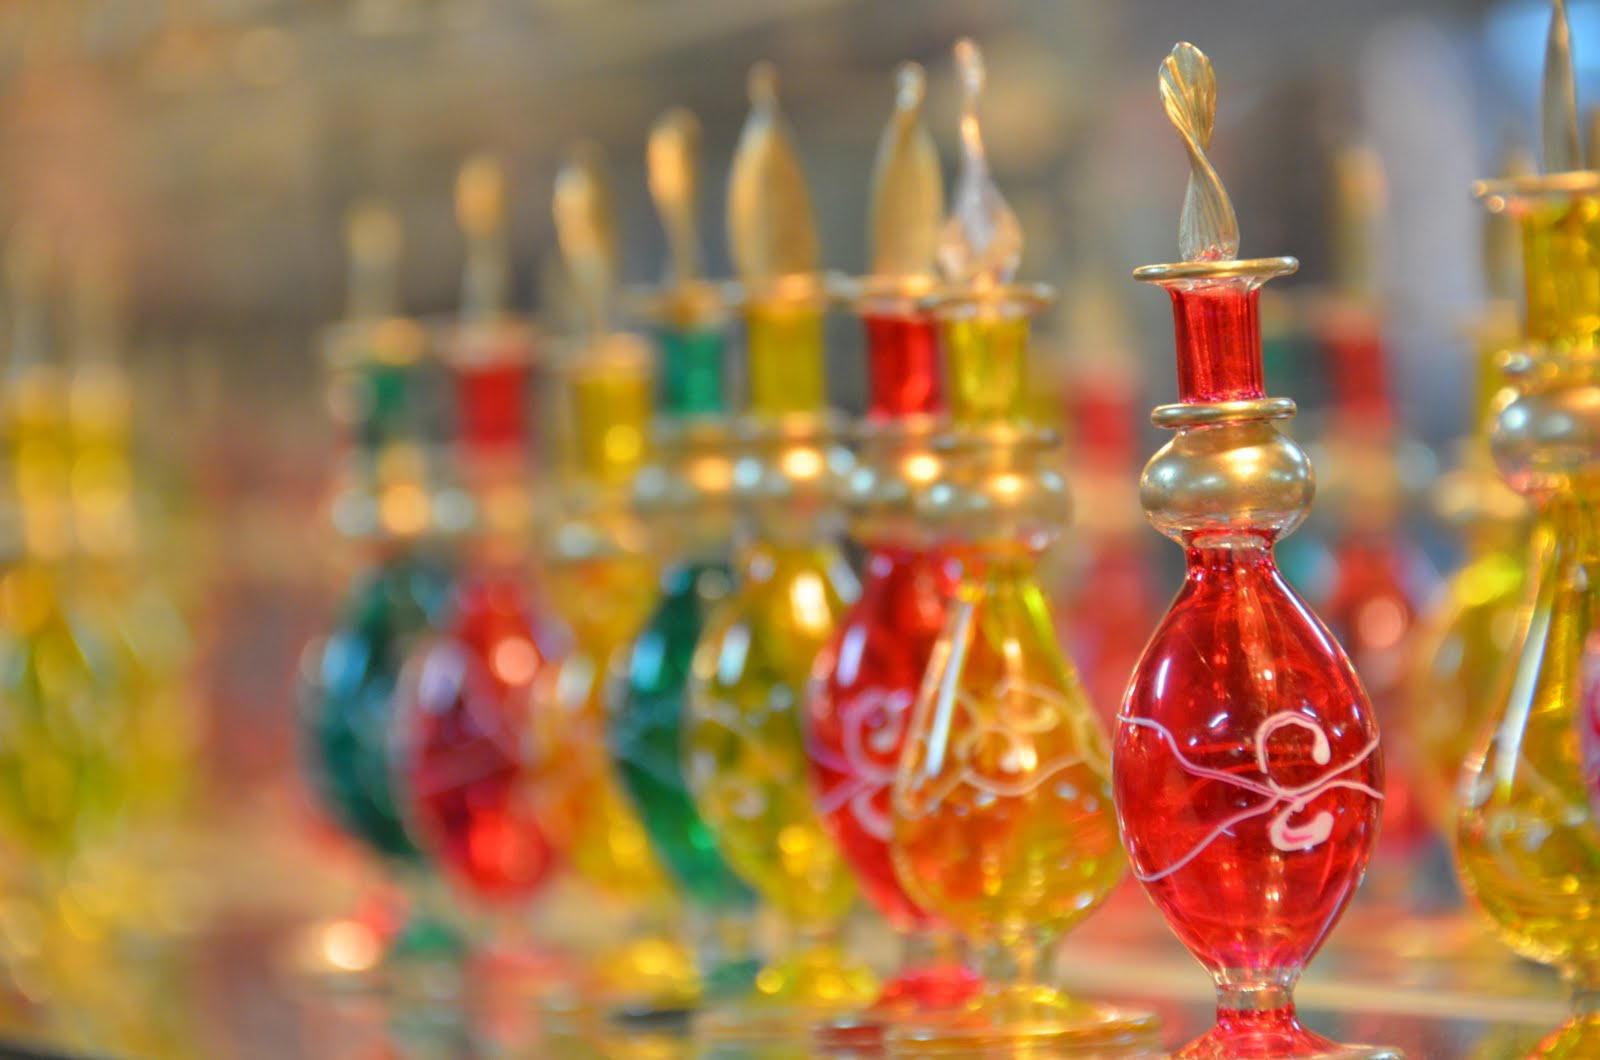 Dahab lovers blog perfume the story about egypt perfume the story about egypt izmirmasajfo